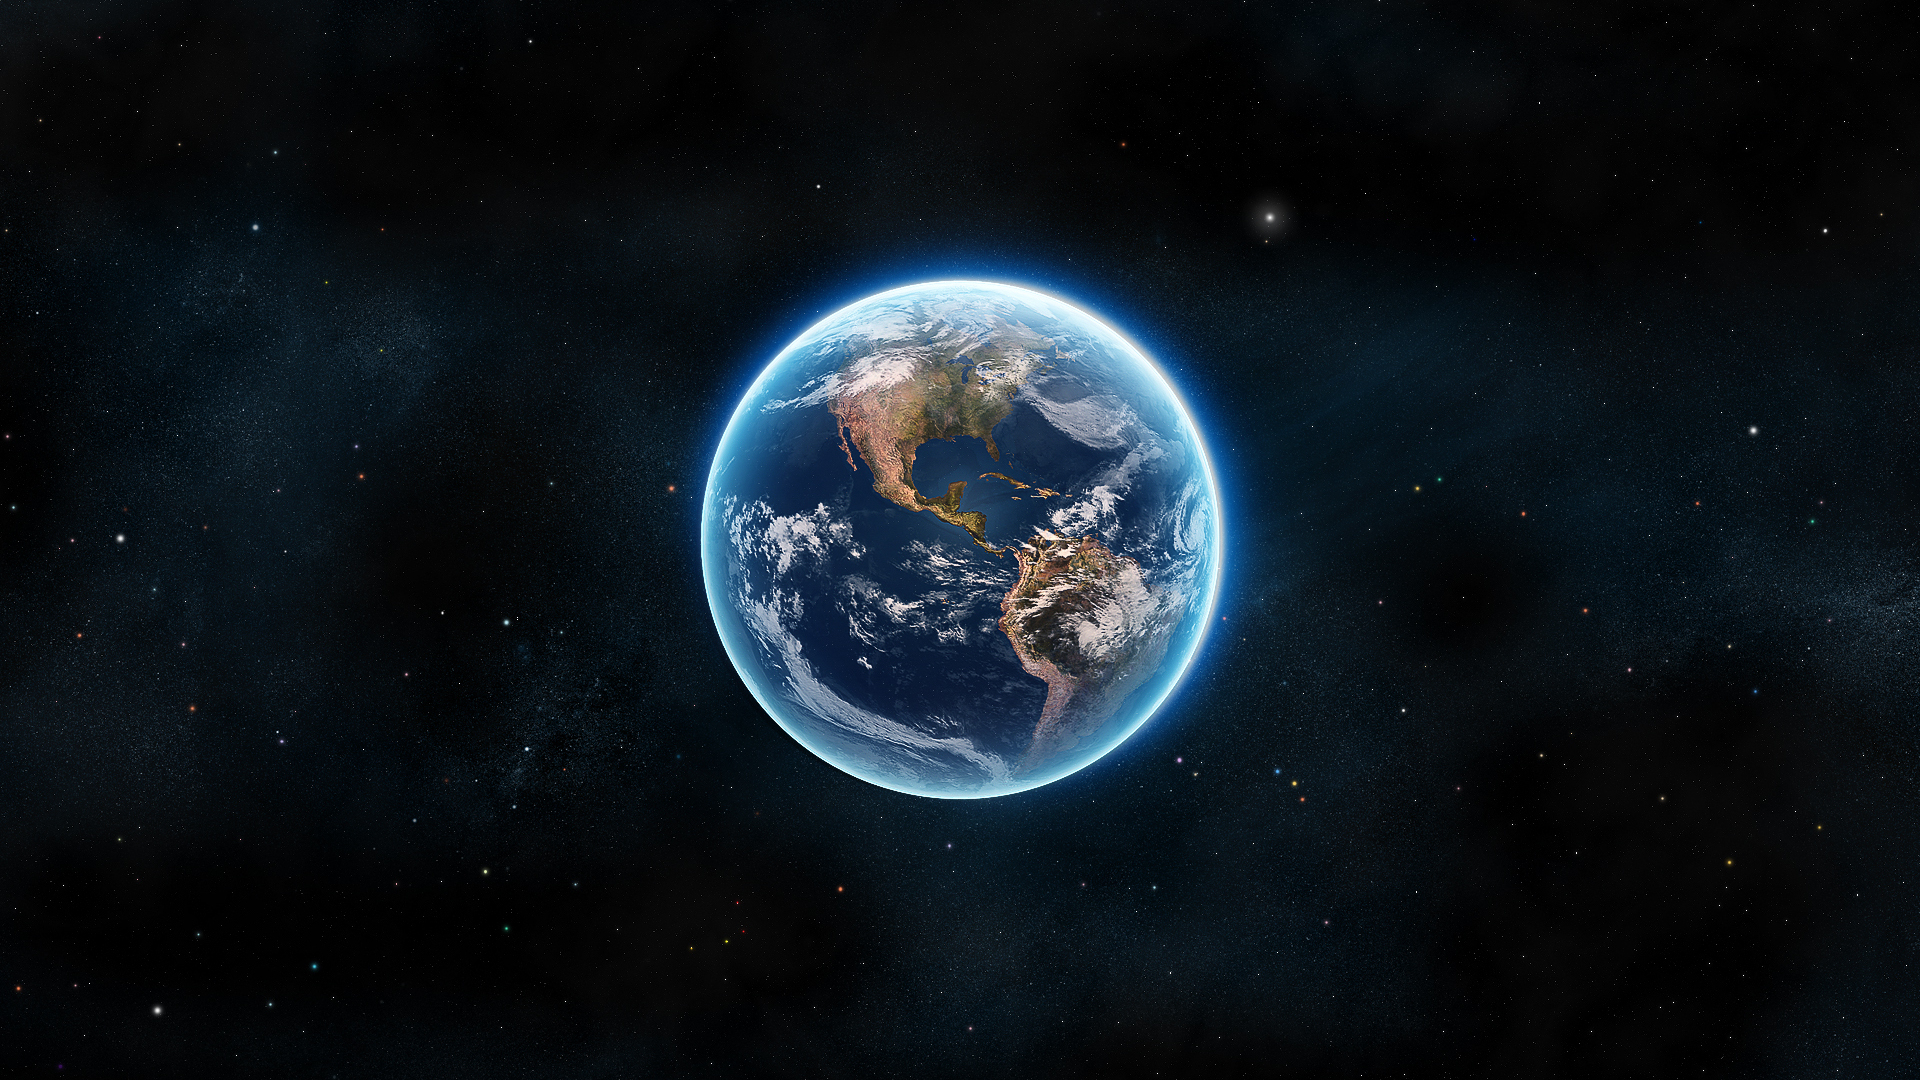 Earth Desktop Wallpaper Hd Pictures Earth Planets Space 1920x1080